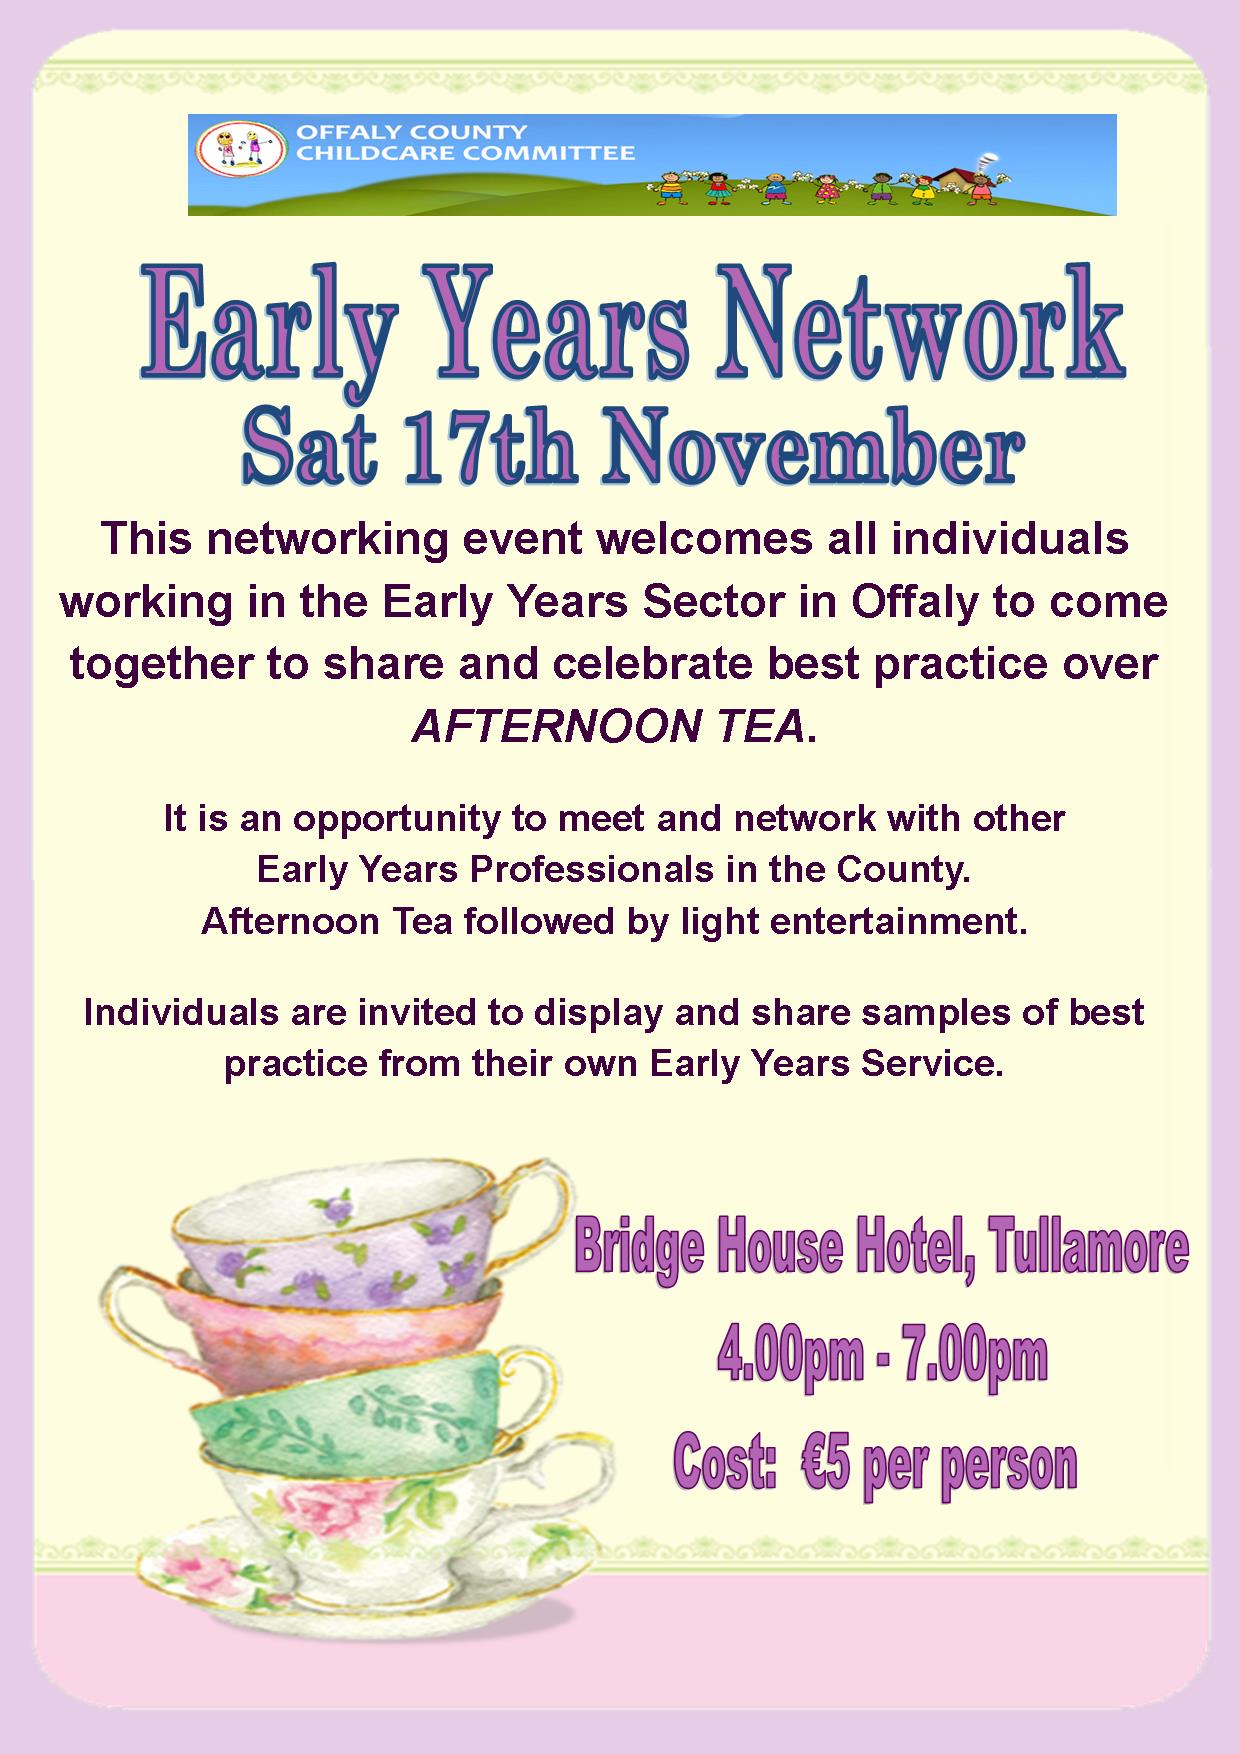 Early Years Network poster